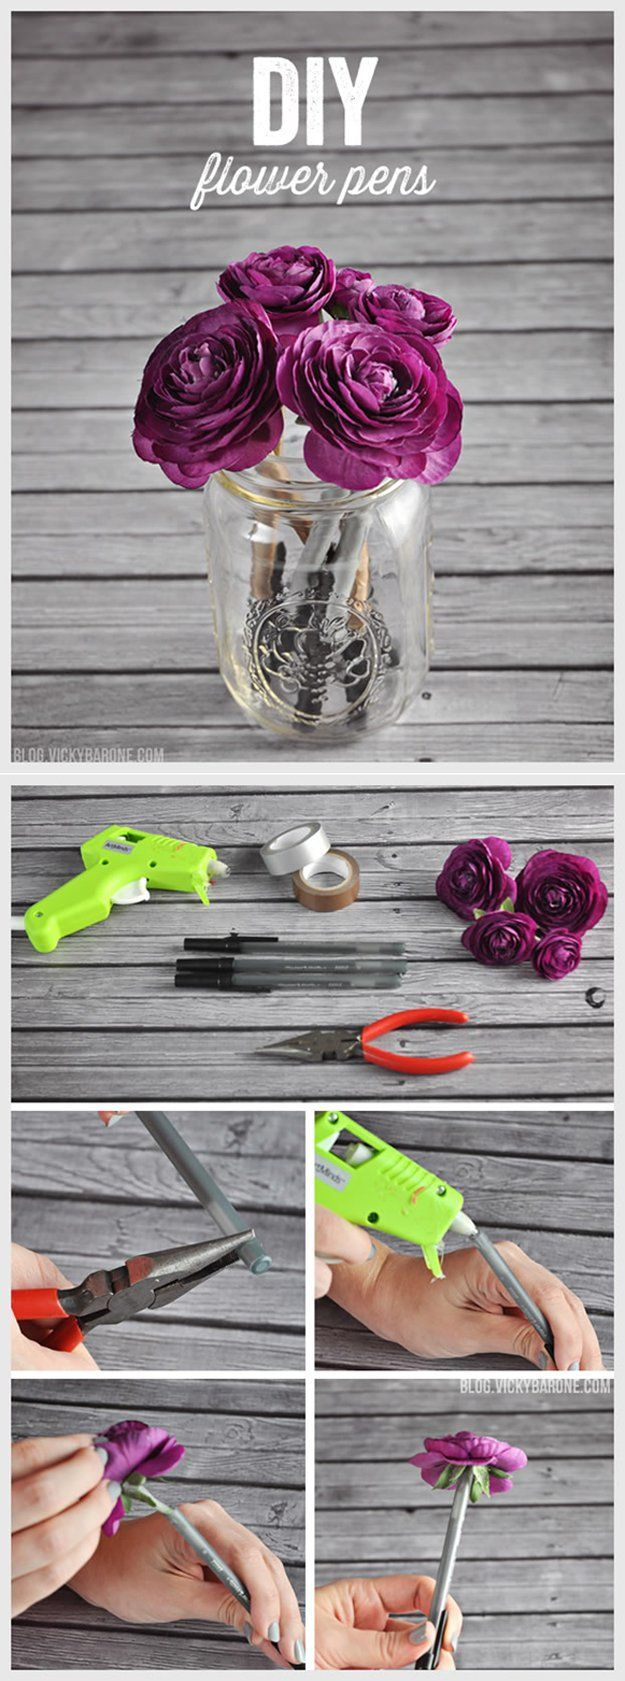 Washi Tape Crafts - DIY Flower Pens - for our pens so they don't get stolen!